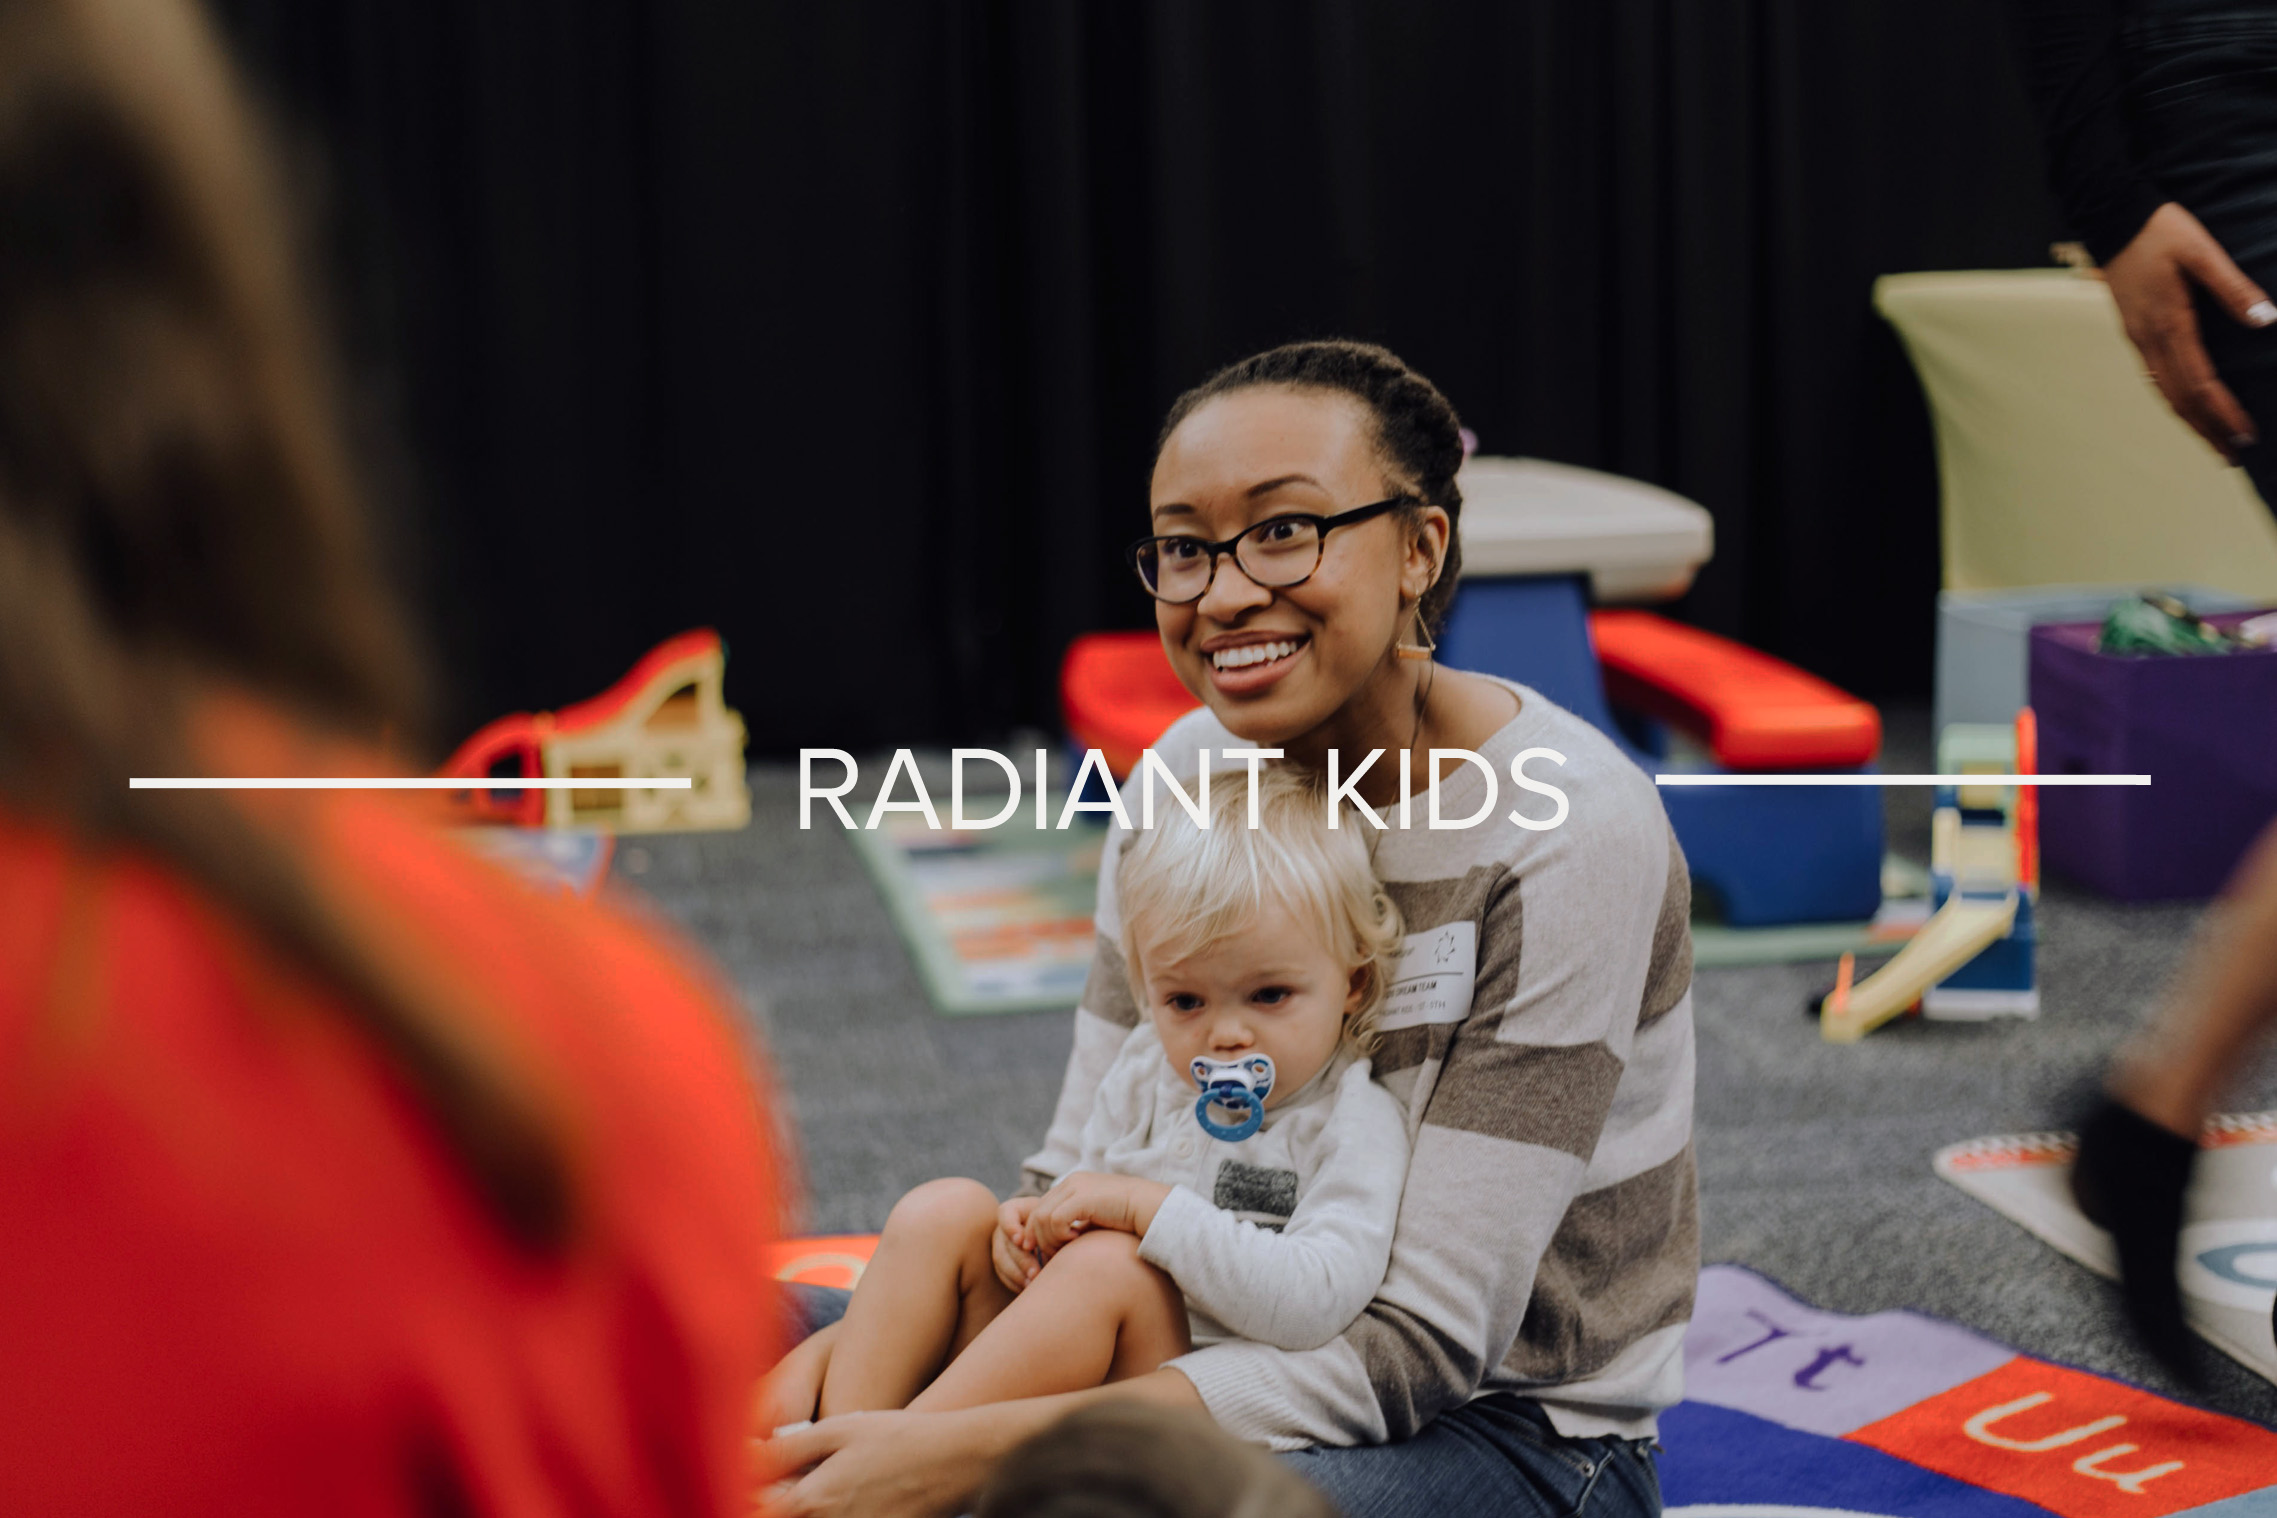 RADIANT KIDS - Our kids team creates a clean and safe environment for our kids. This team takes care of families, worships with kids, and makes the Bible come to life for students of all-ages.